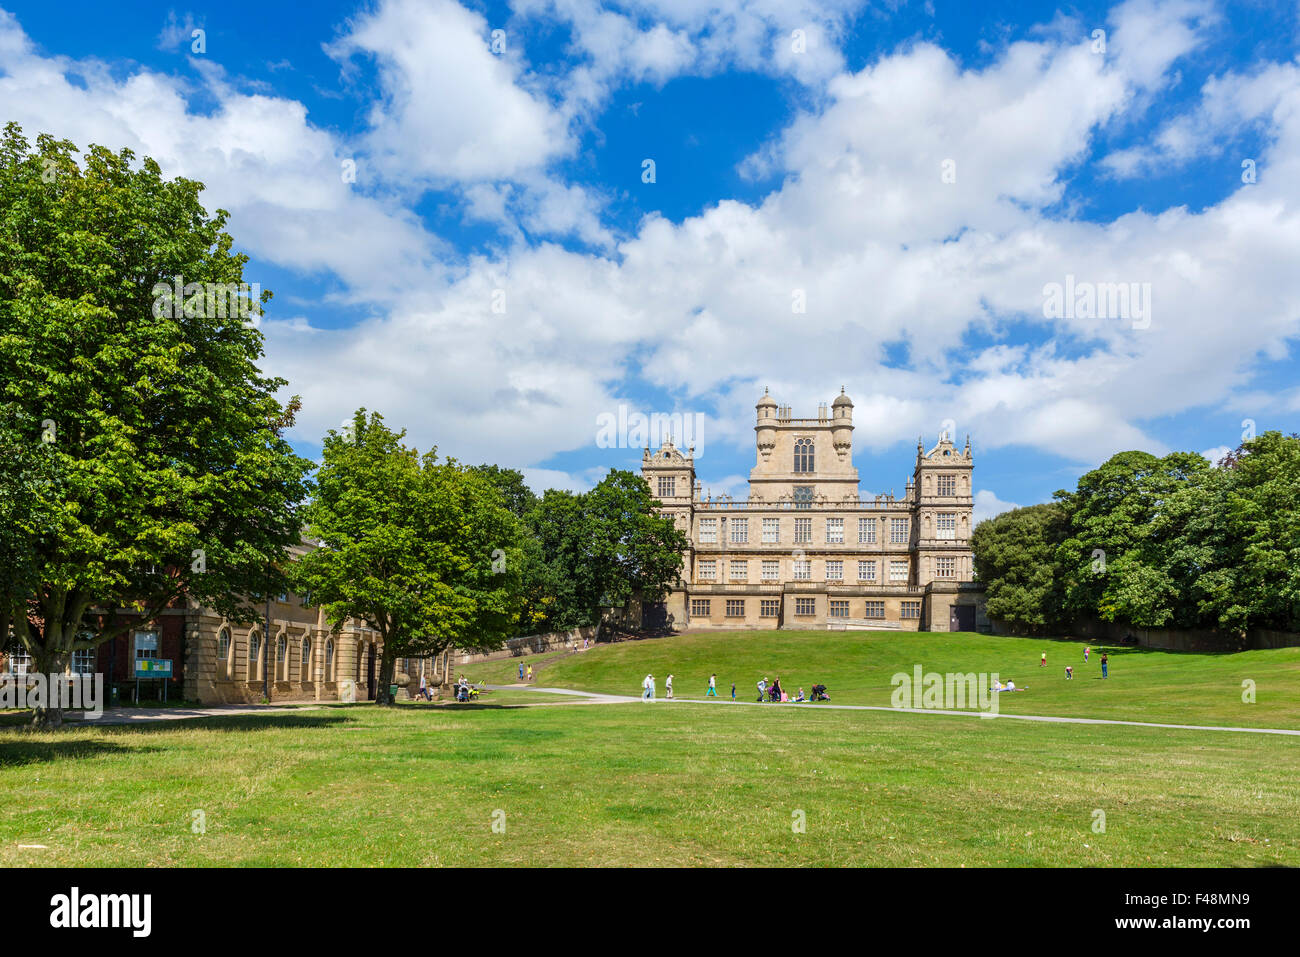 Wollaton Hall, a 16thC Elizabethan country house, Wollaton Park, Nottingham, England, UK - Stock Image